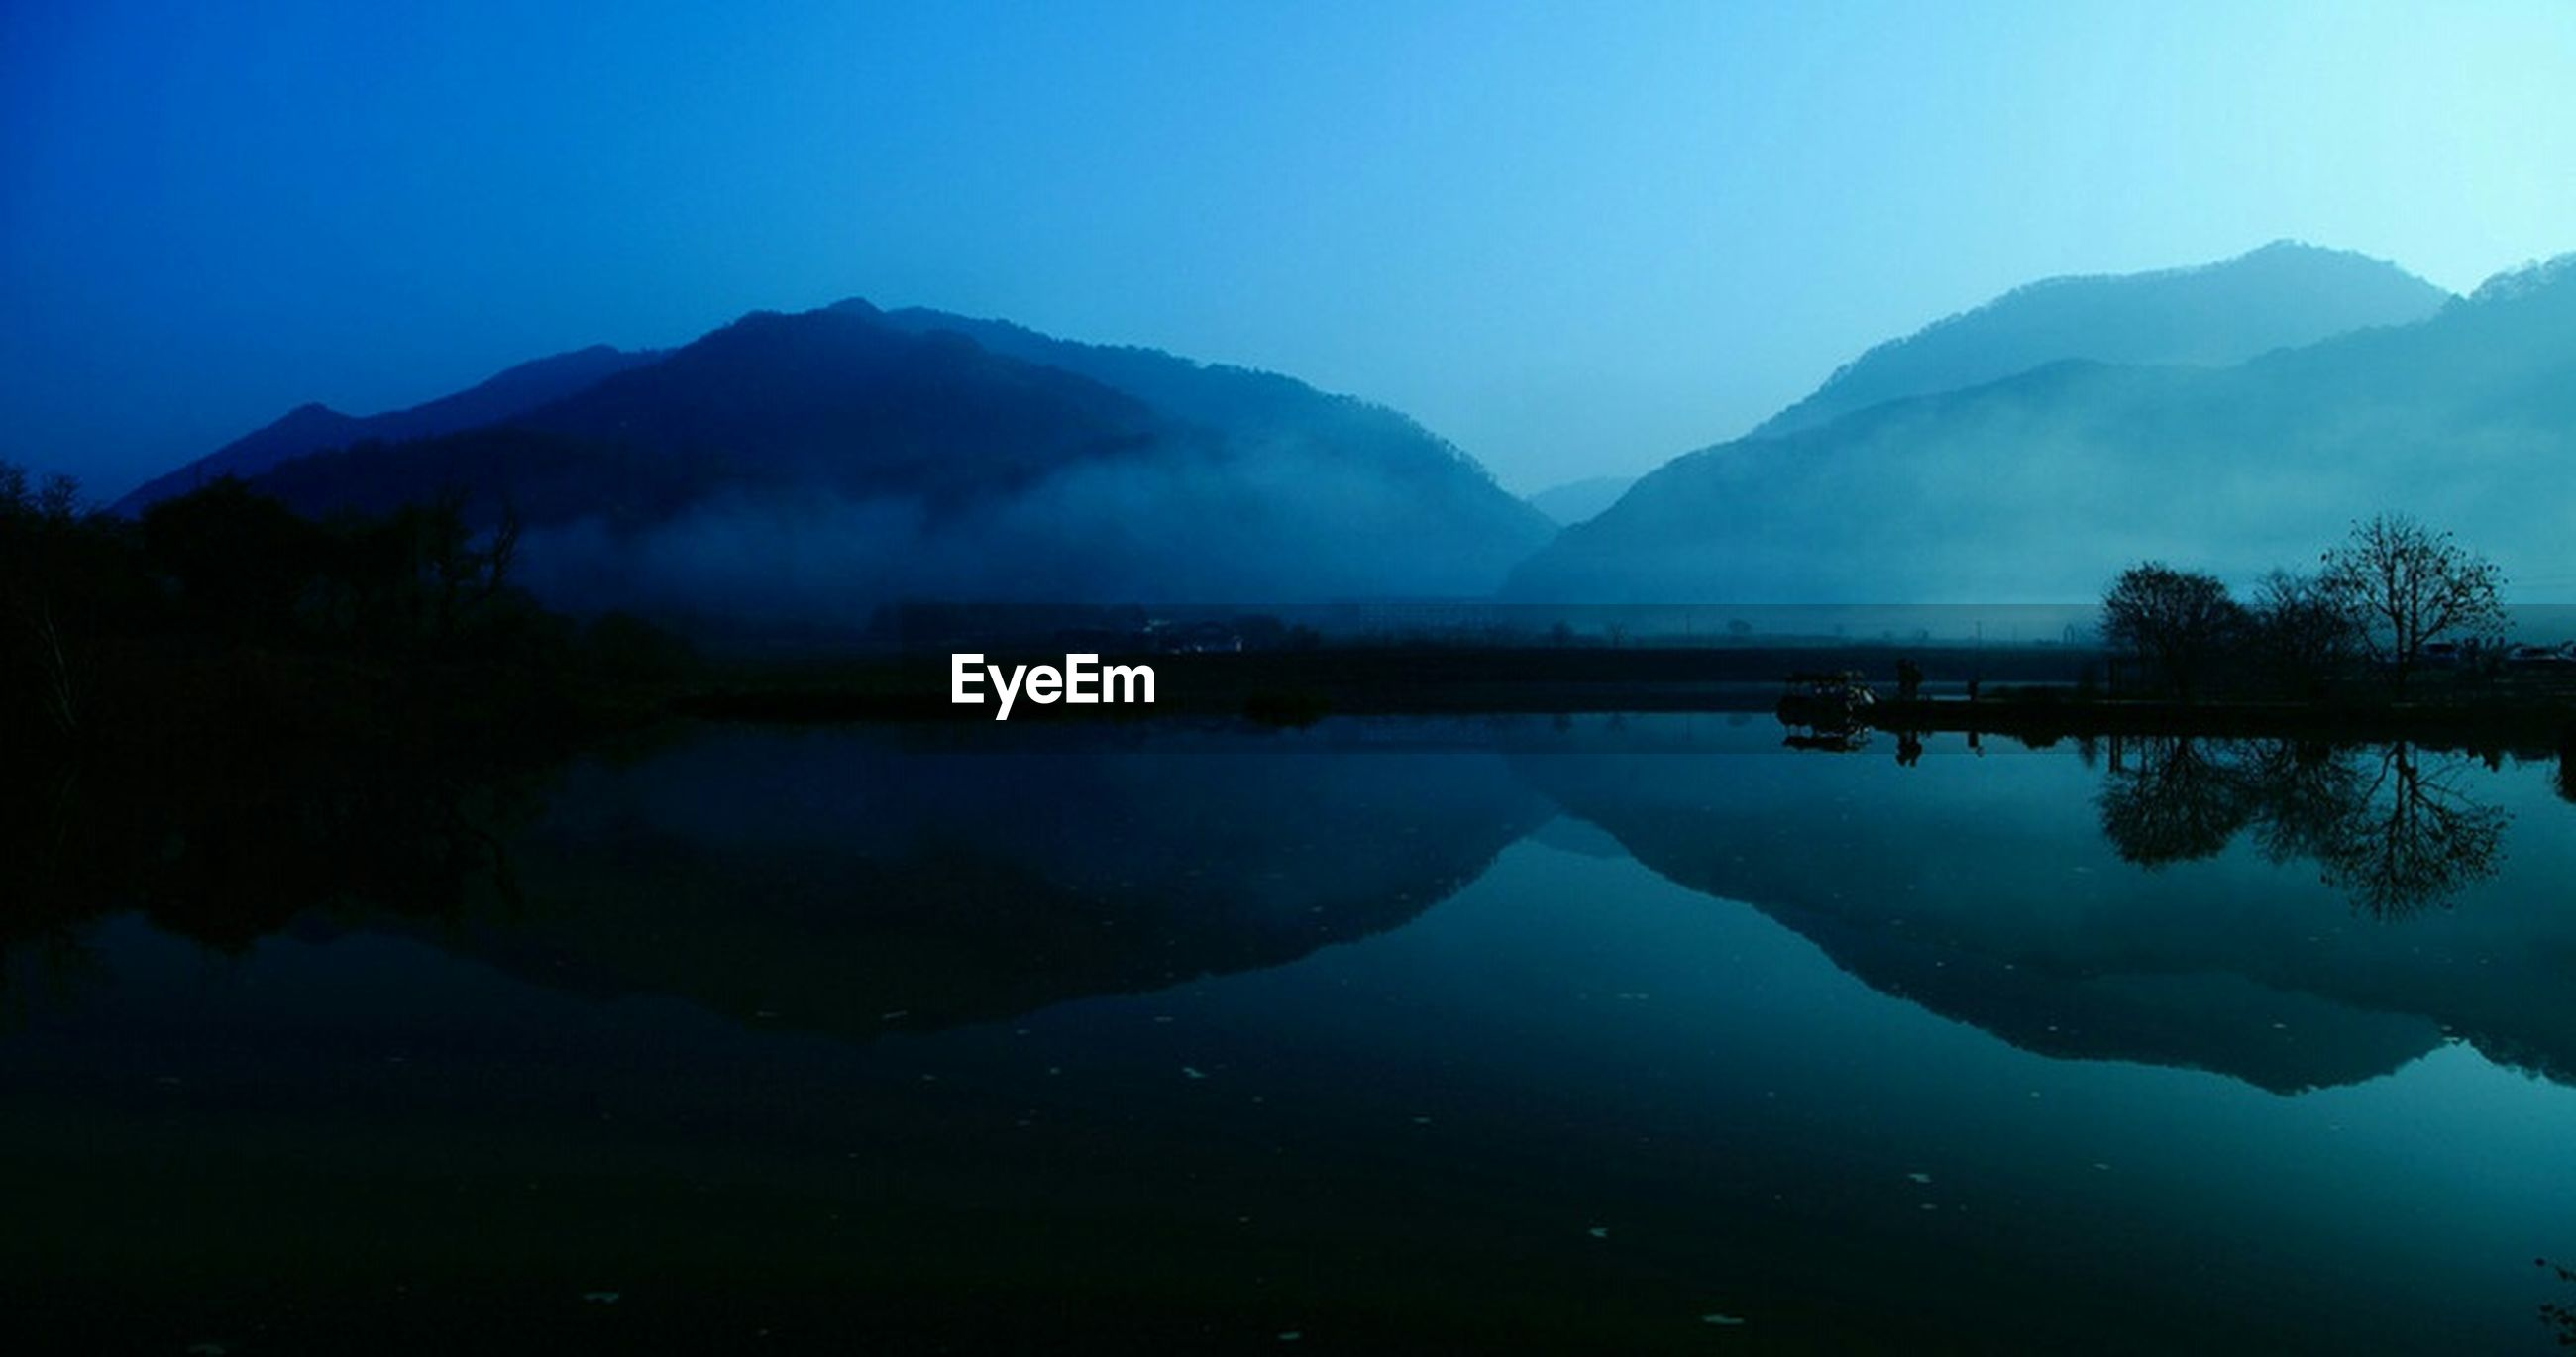 water, mountain, tranquil scene, tranquility, scenics, reflection, lake, beauty in nature, mountain range, blue, clear sky, nature, standing water, waterfront, idyllic, copy space, calm, sky, majestic, dusk